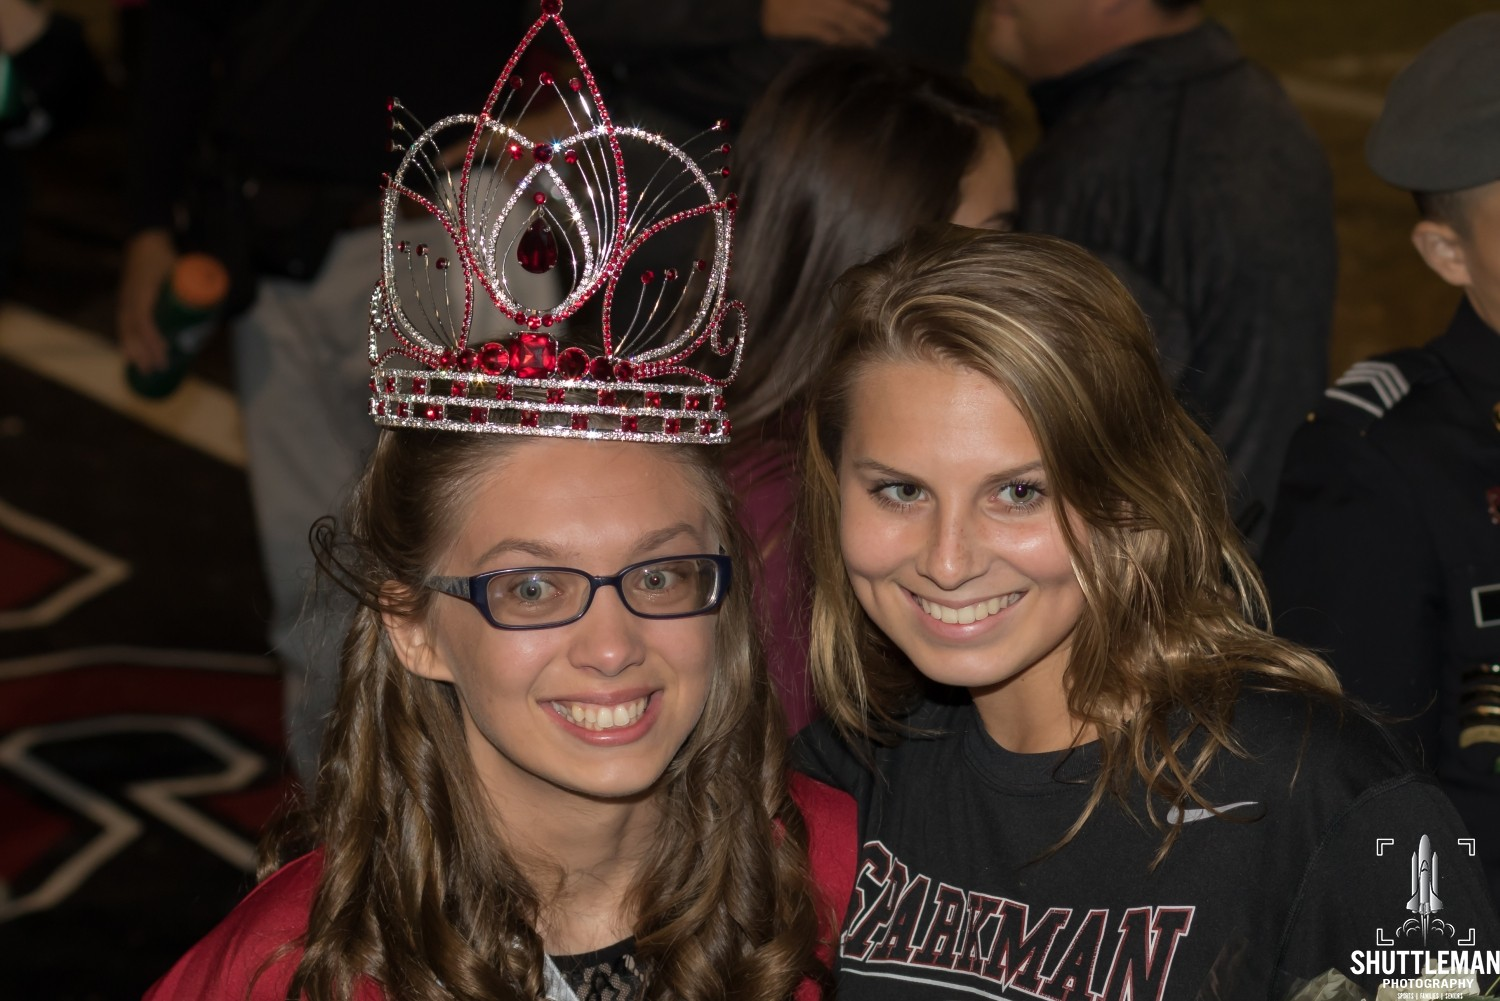 Sparkman High Homecoming - A Special Night 2017-18,Football,Gadsden City,Homecoming,Sparkman,homecoming court,